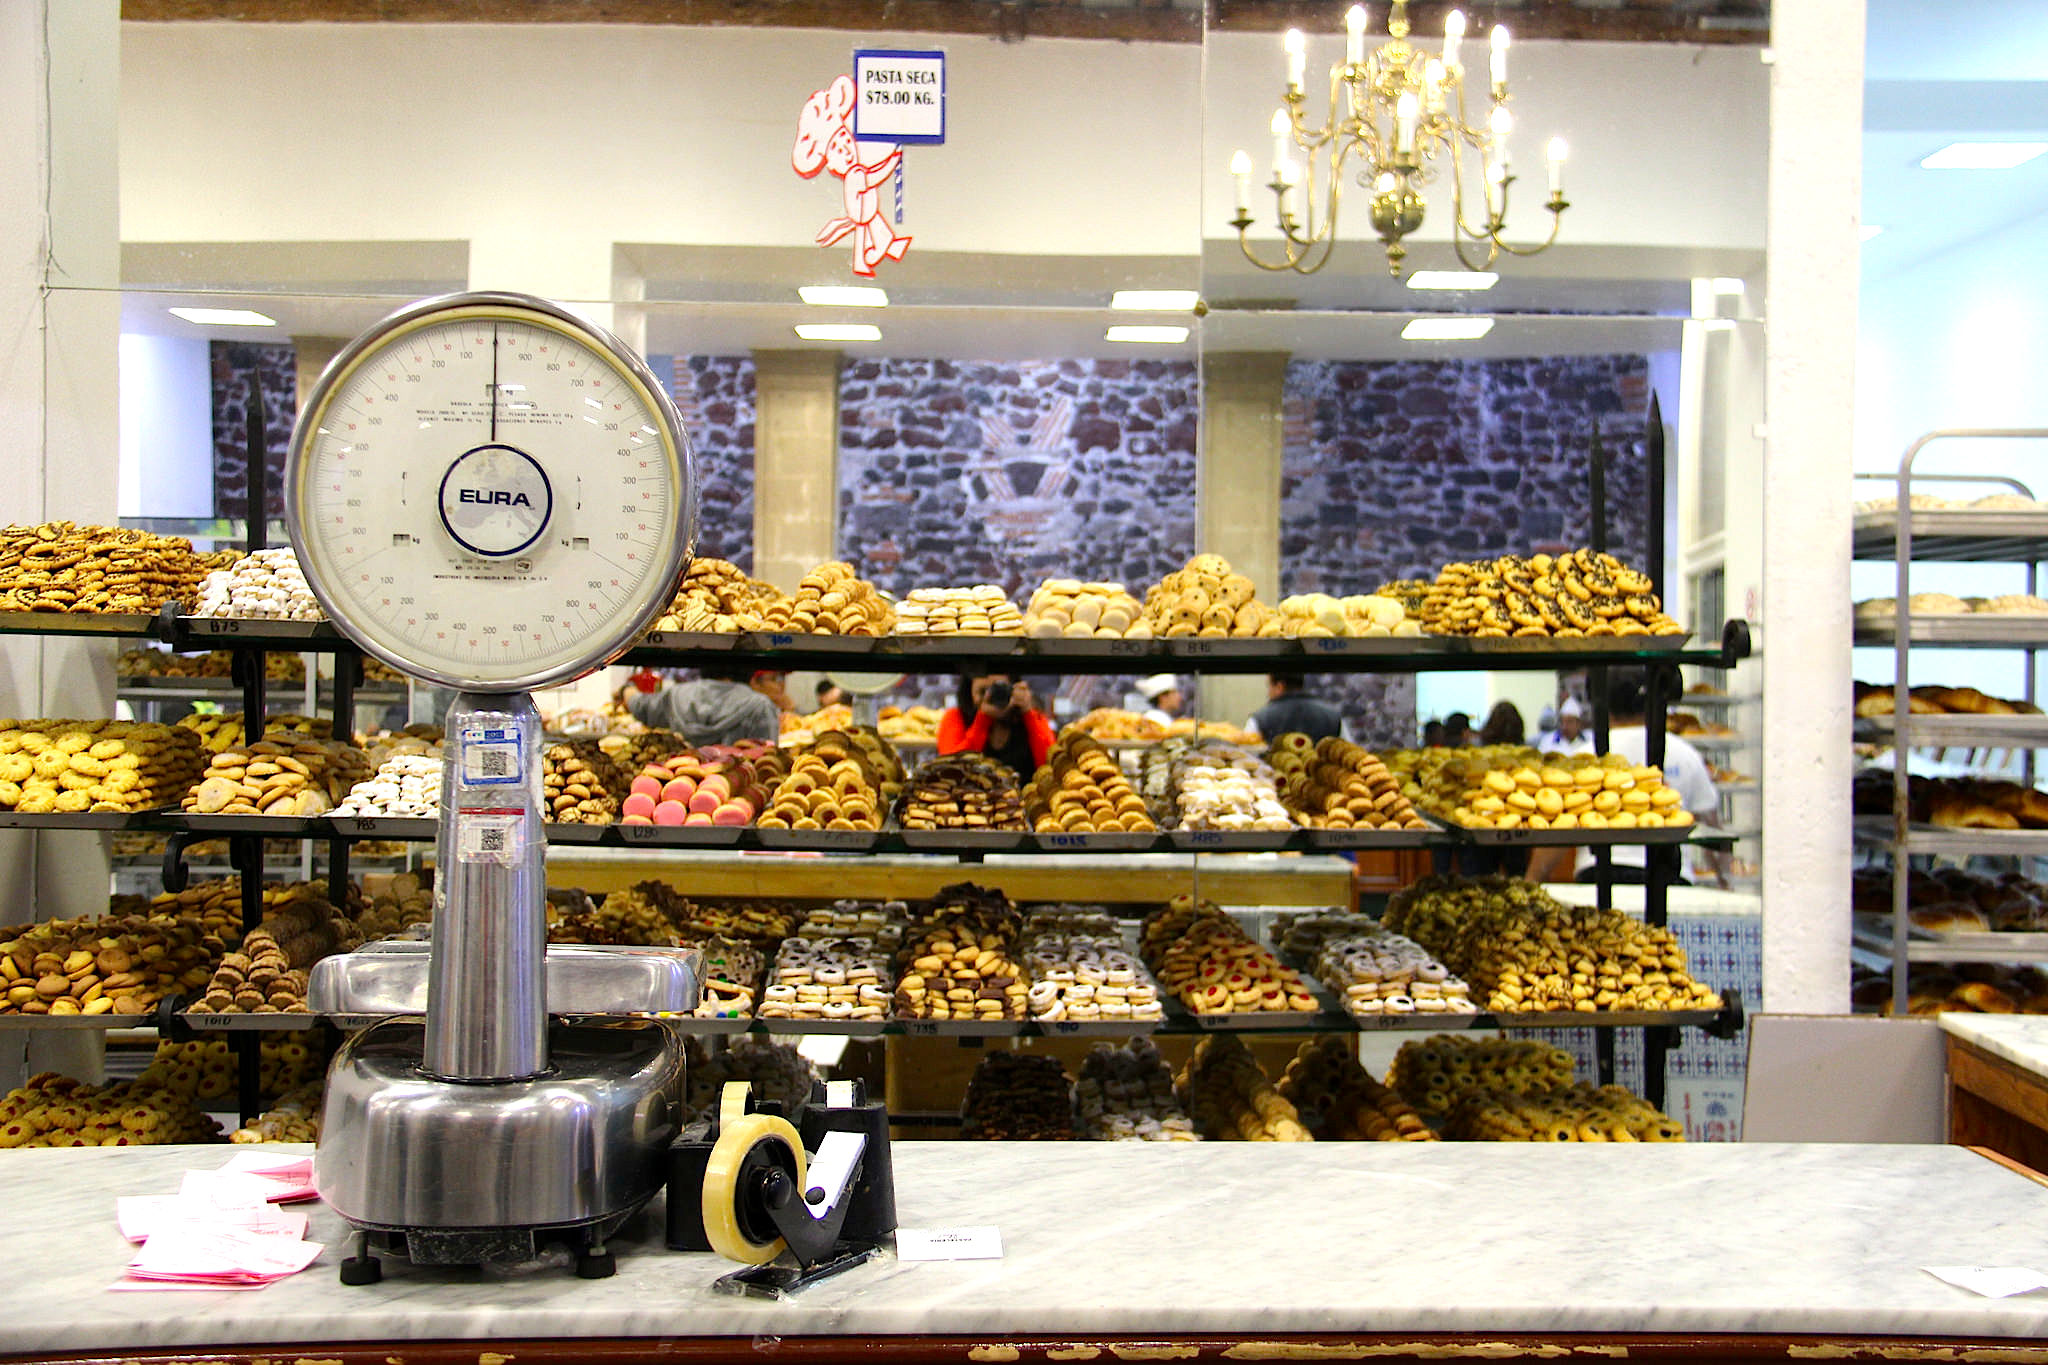 The cookie section at Pastelería Ideal.